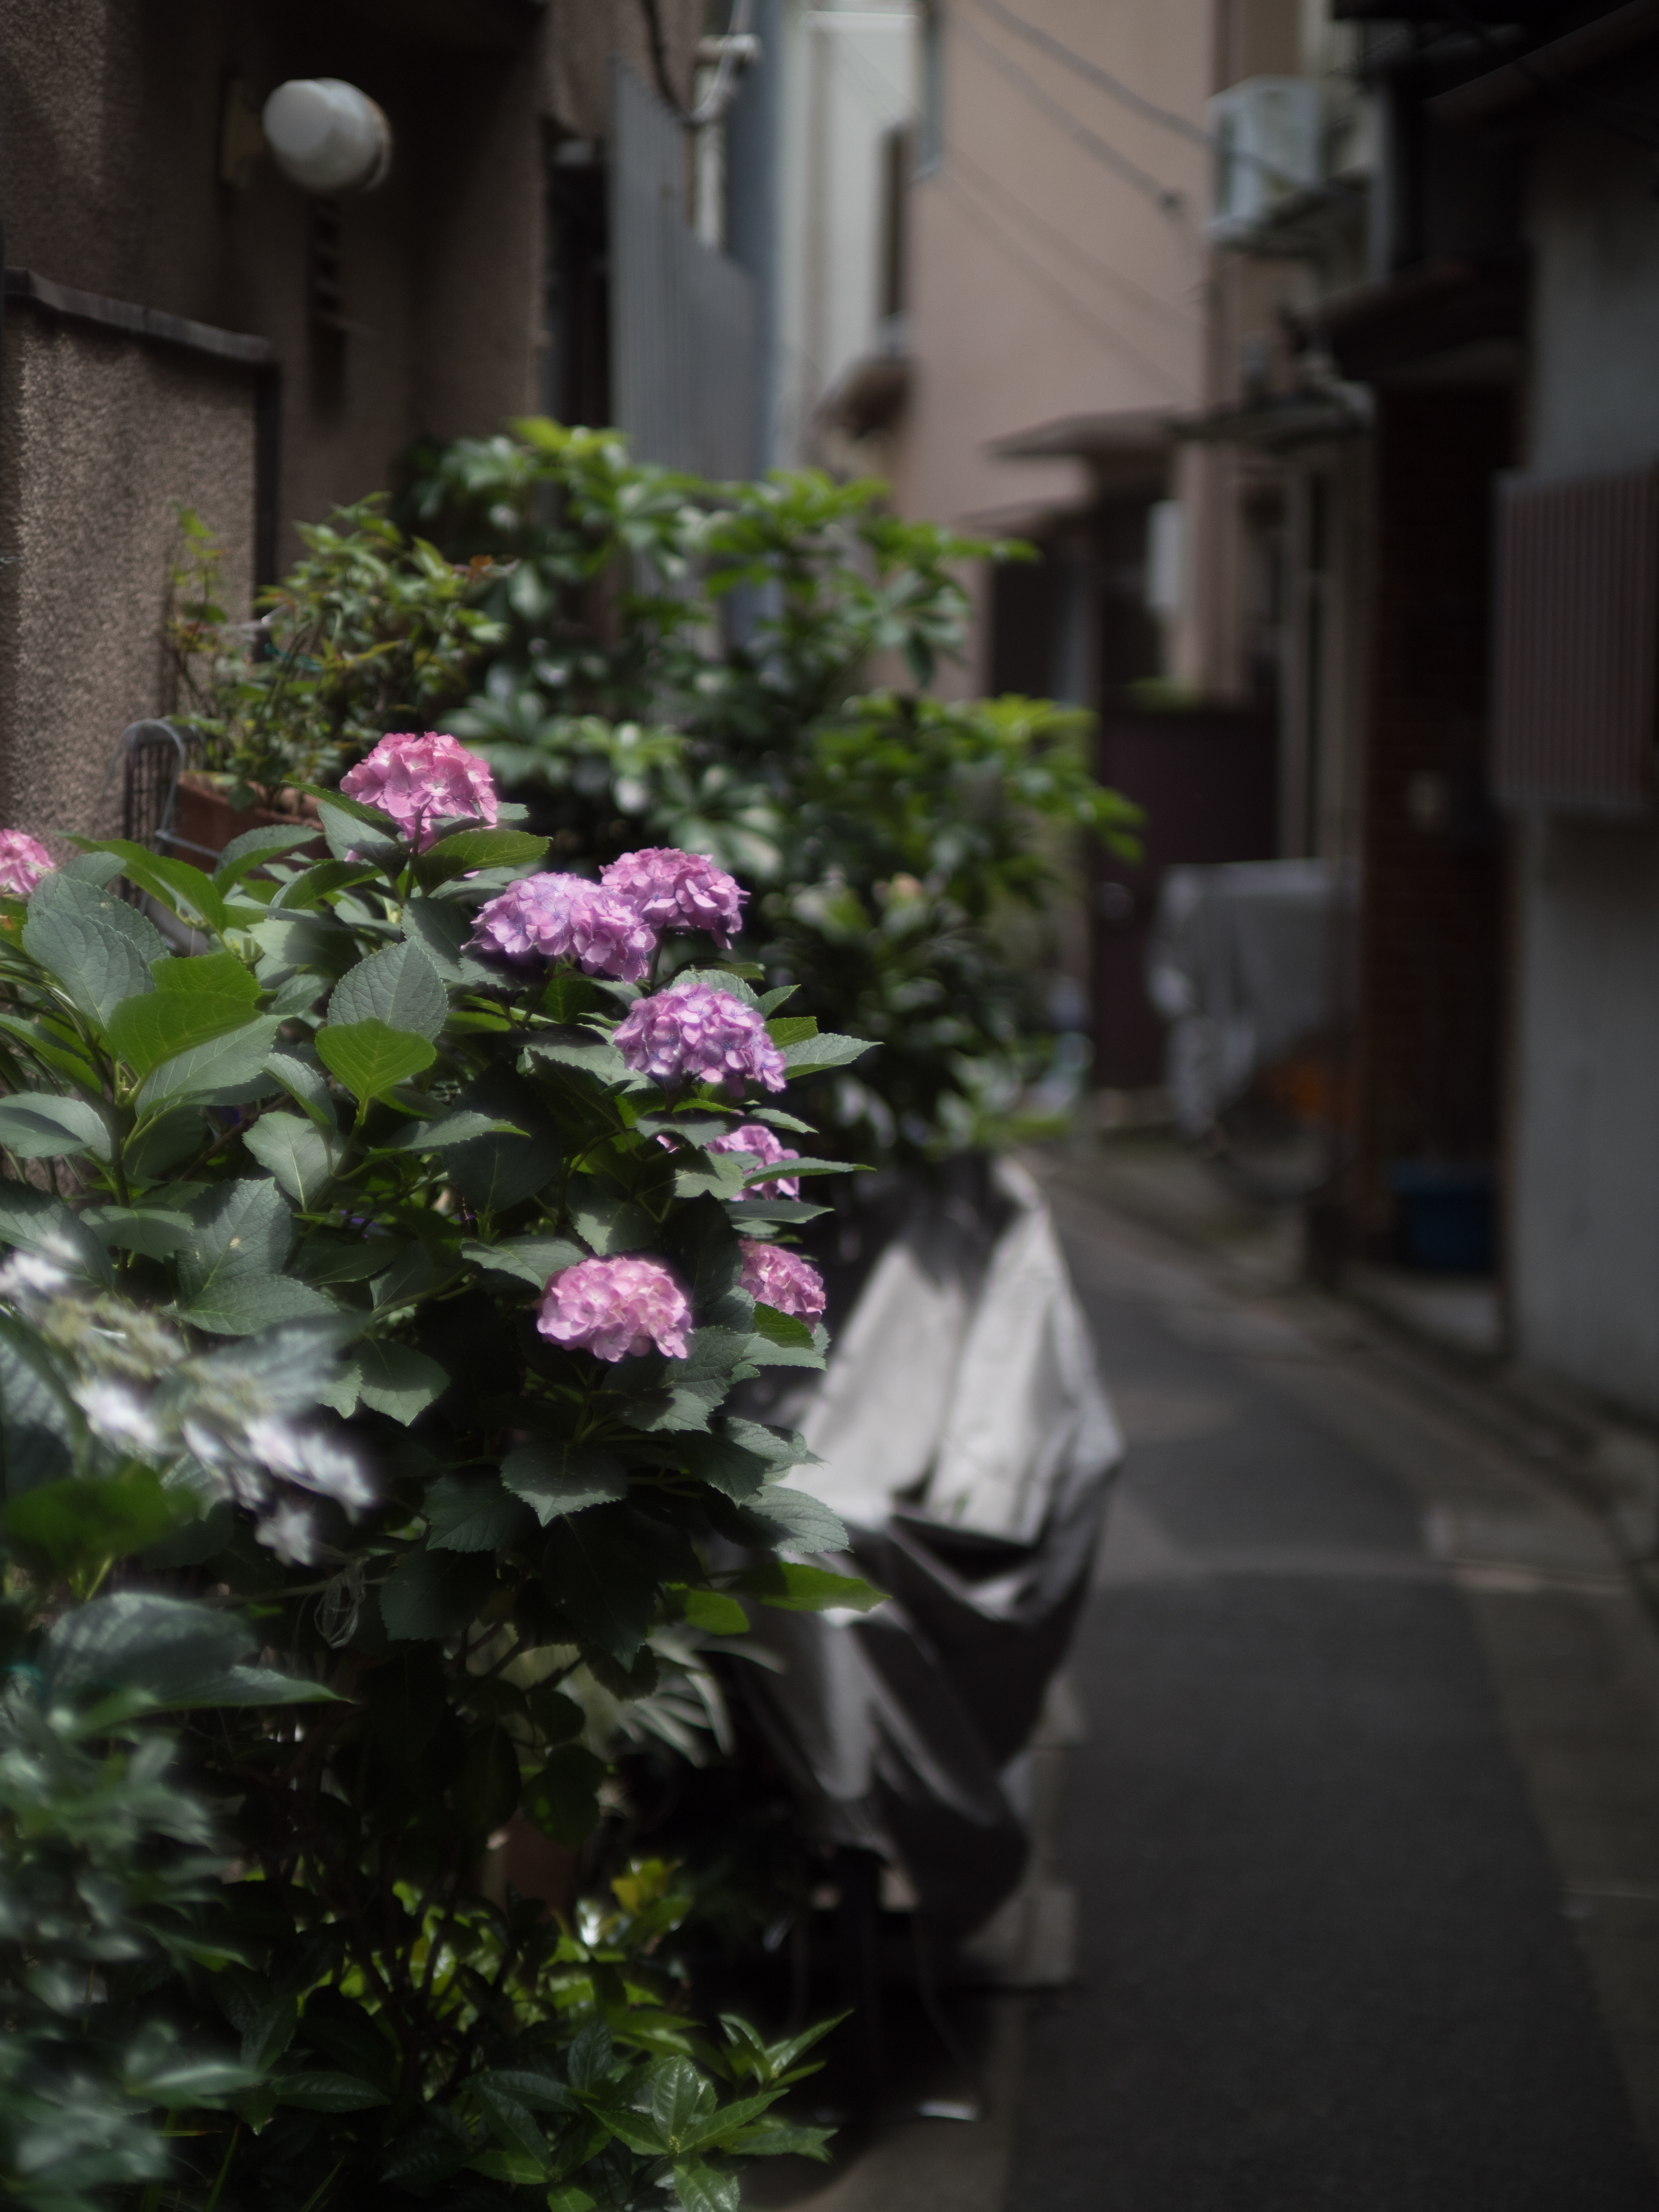 PEN-F / FD 55mm F1.2 S.S.C. / Lens Turbo II / 1/8,000秒 / F1.2 / -1.3EV / ISO200 / WB:オート